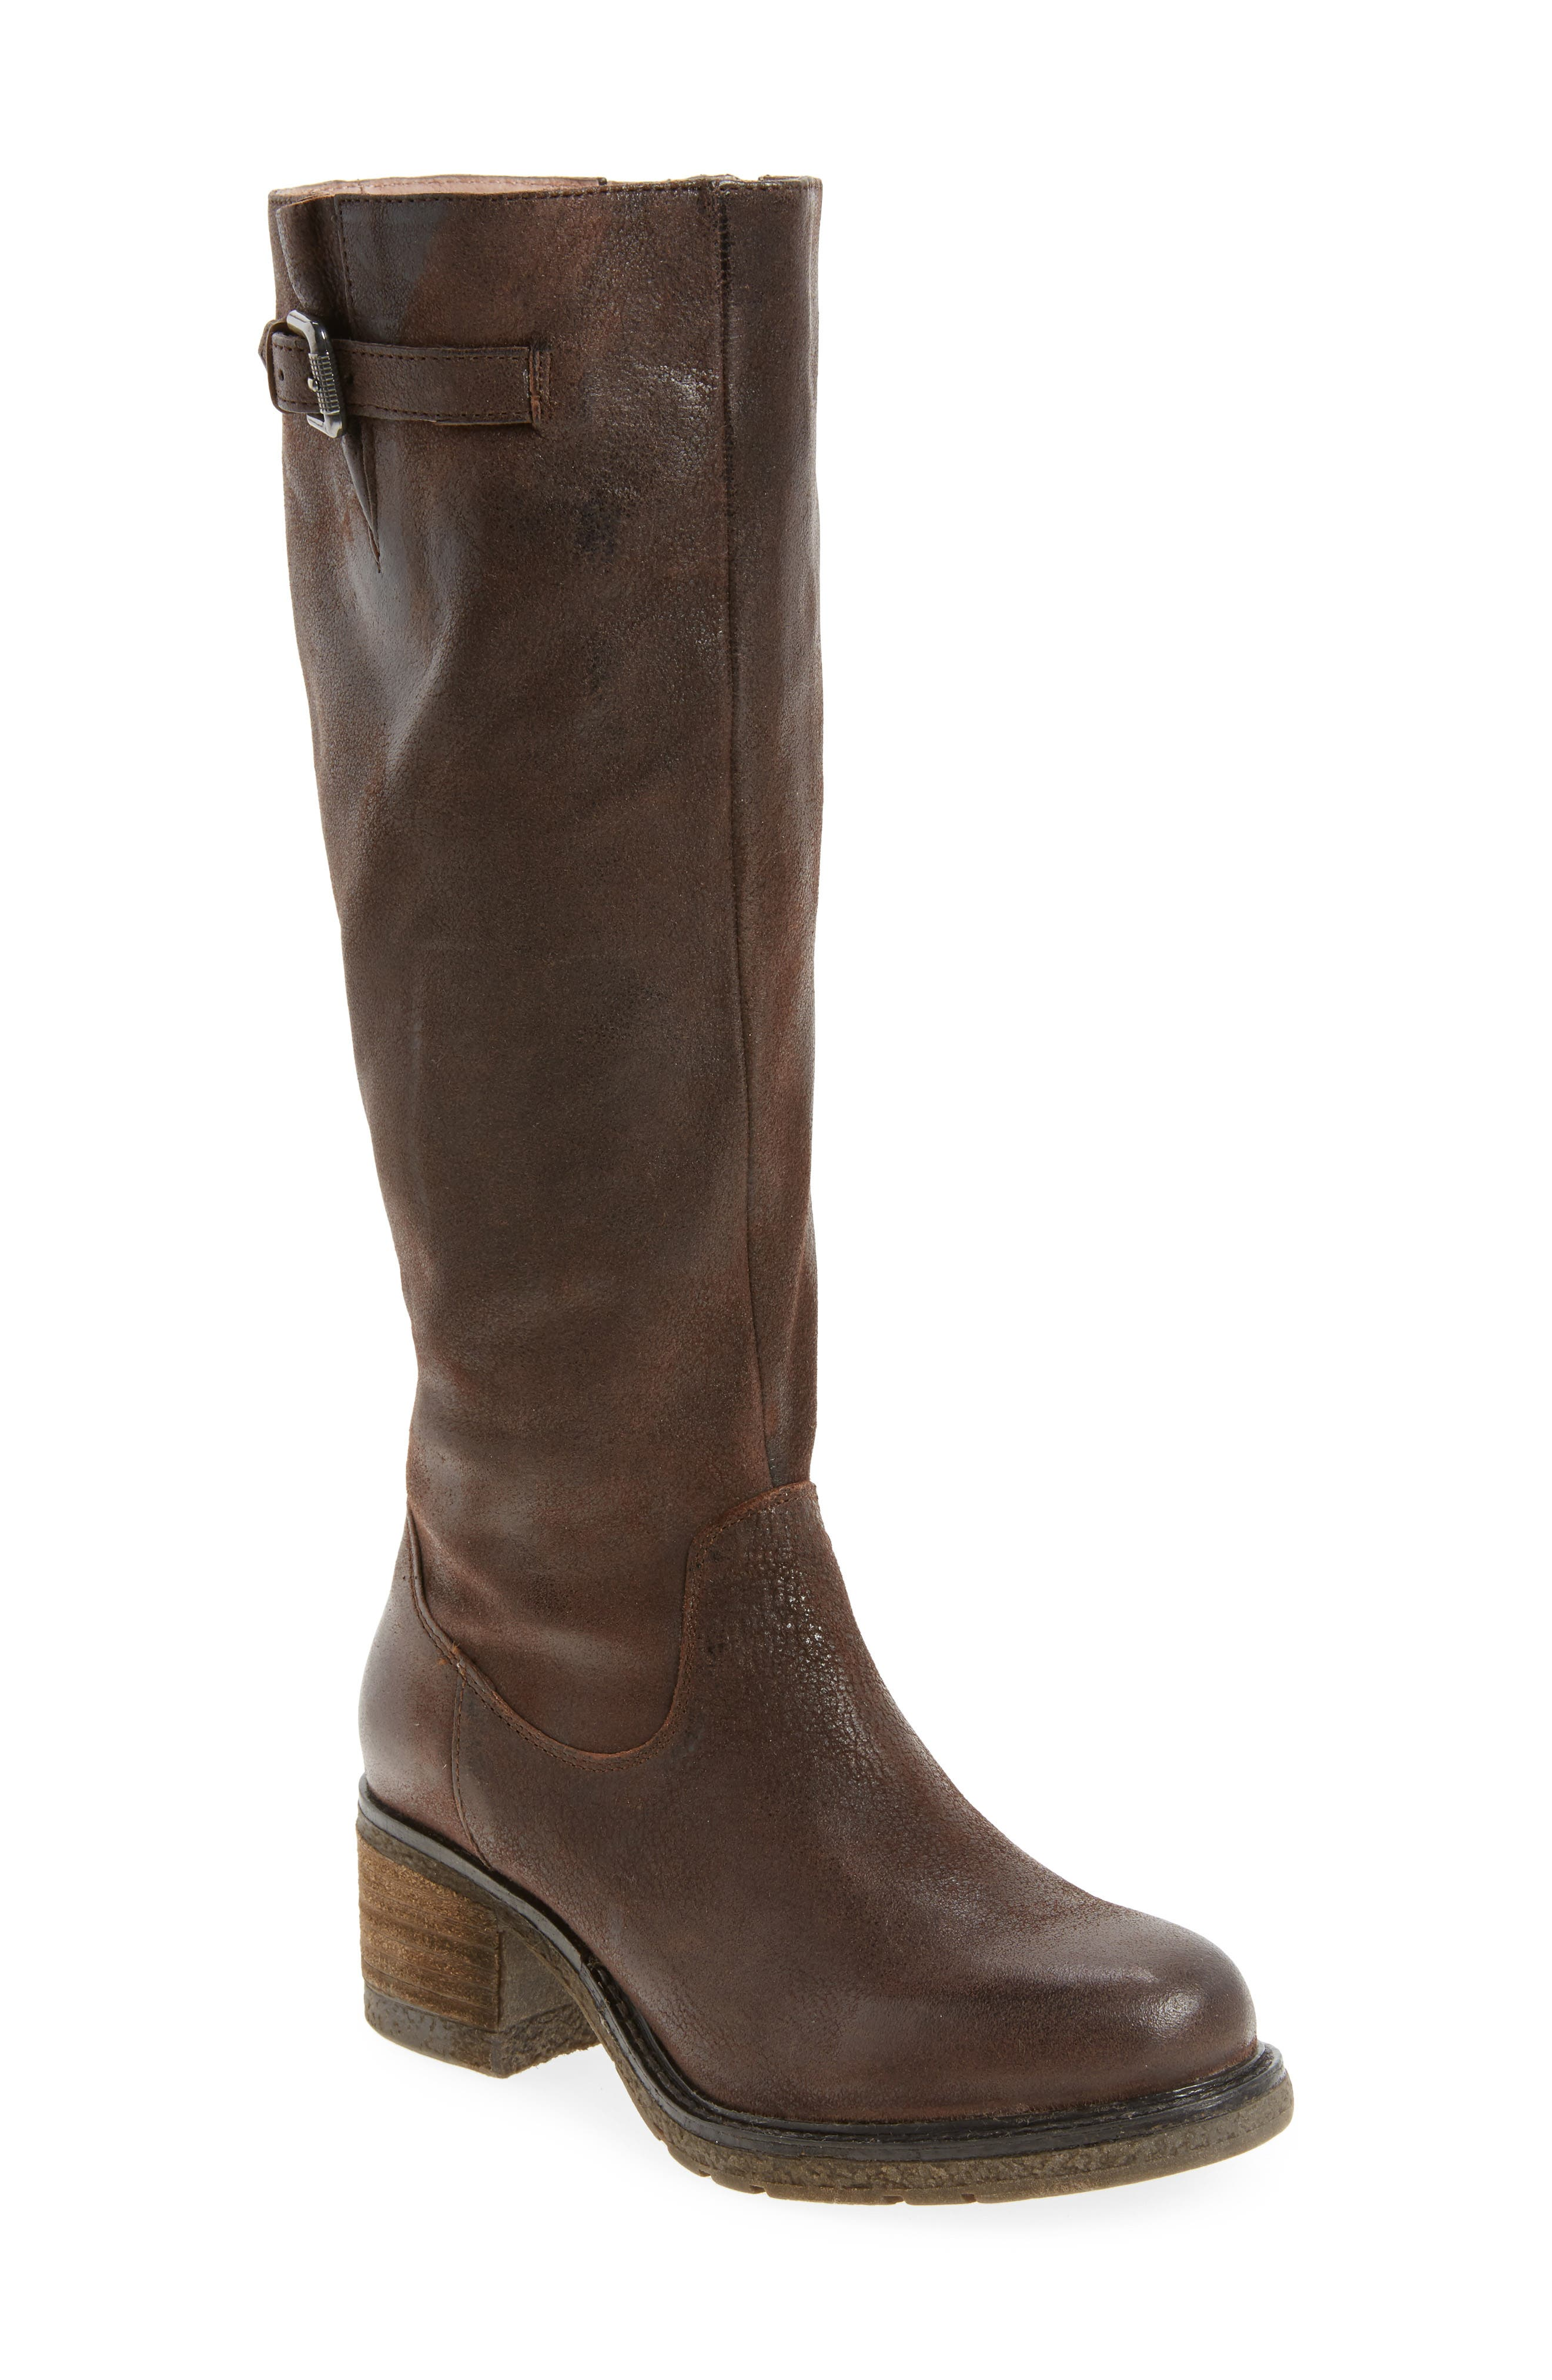 Exit Tall Boot,                             Main thumbnail 1, color,                             Brown Leather